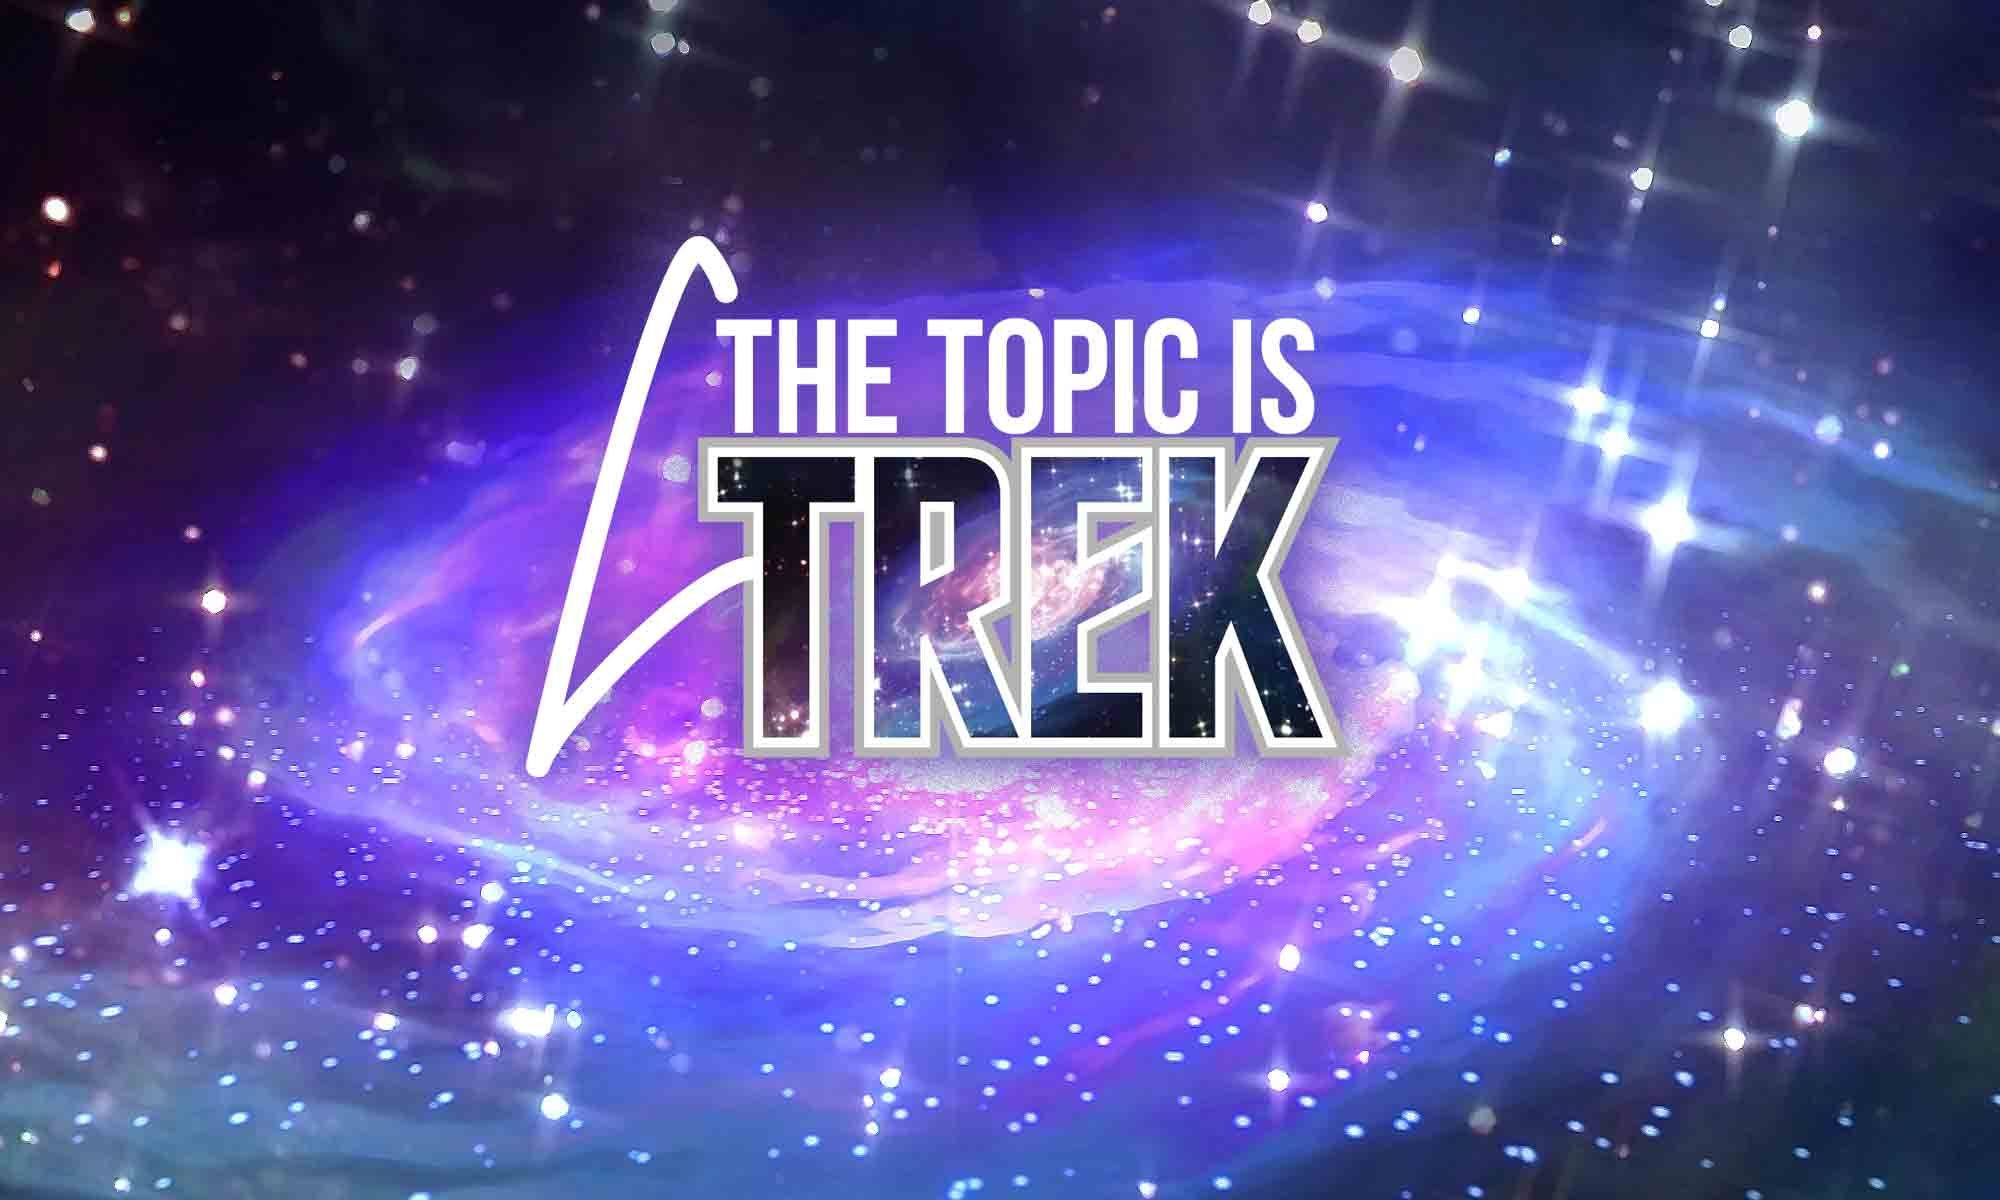 The Topic is Trek